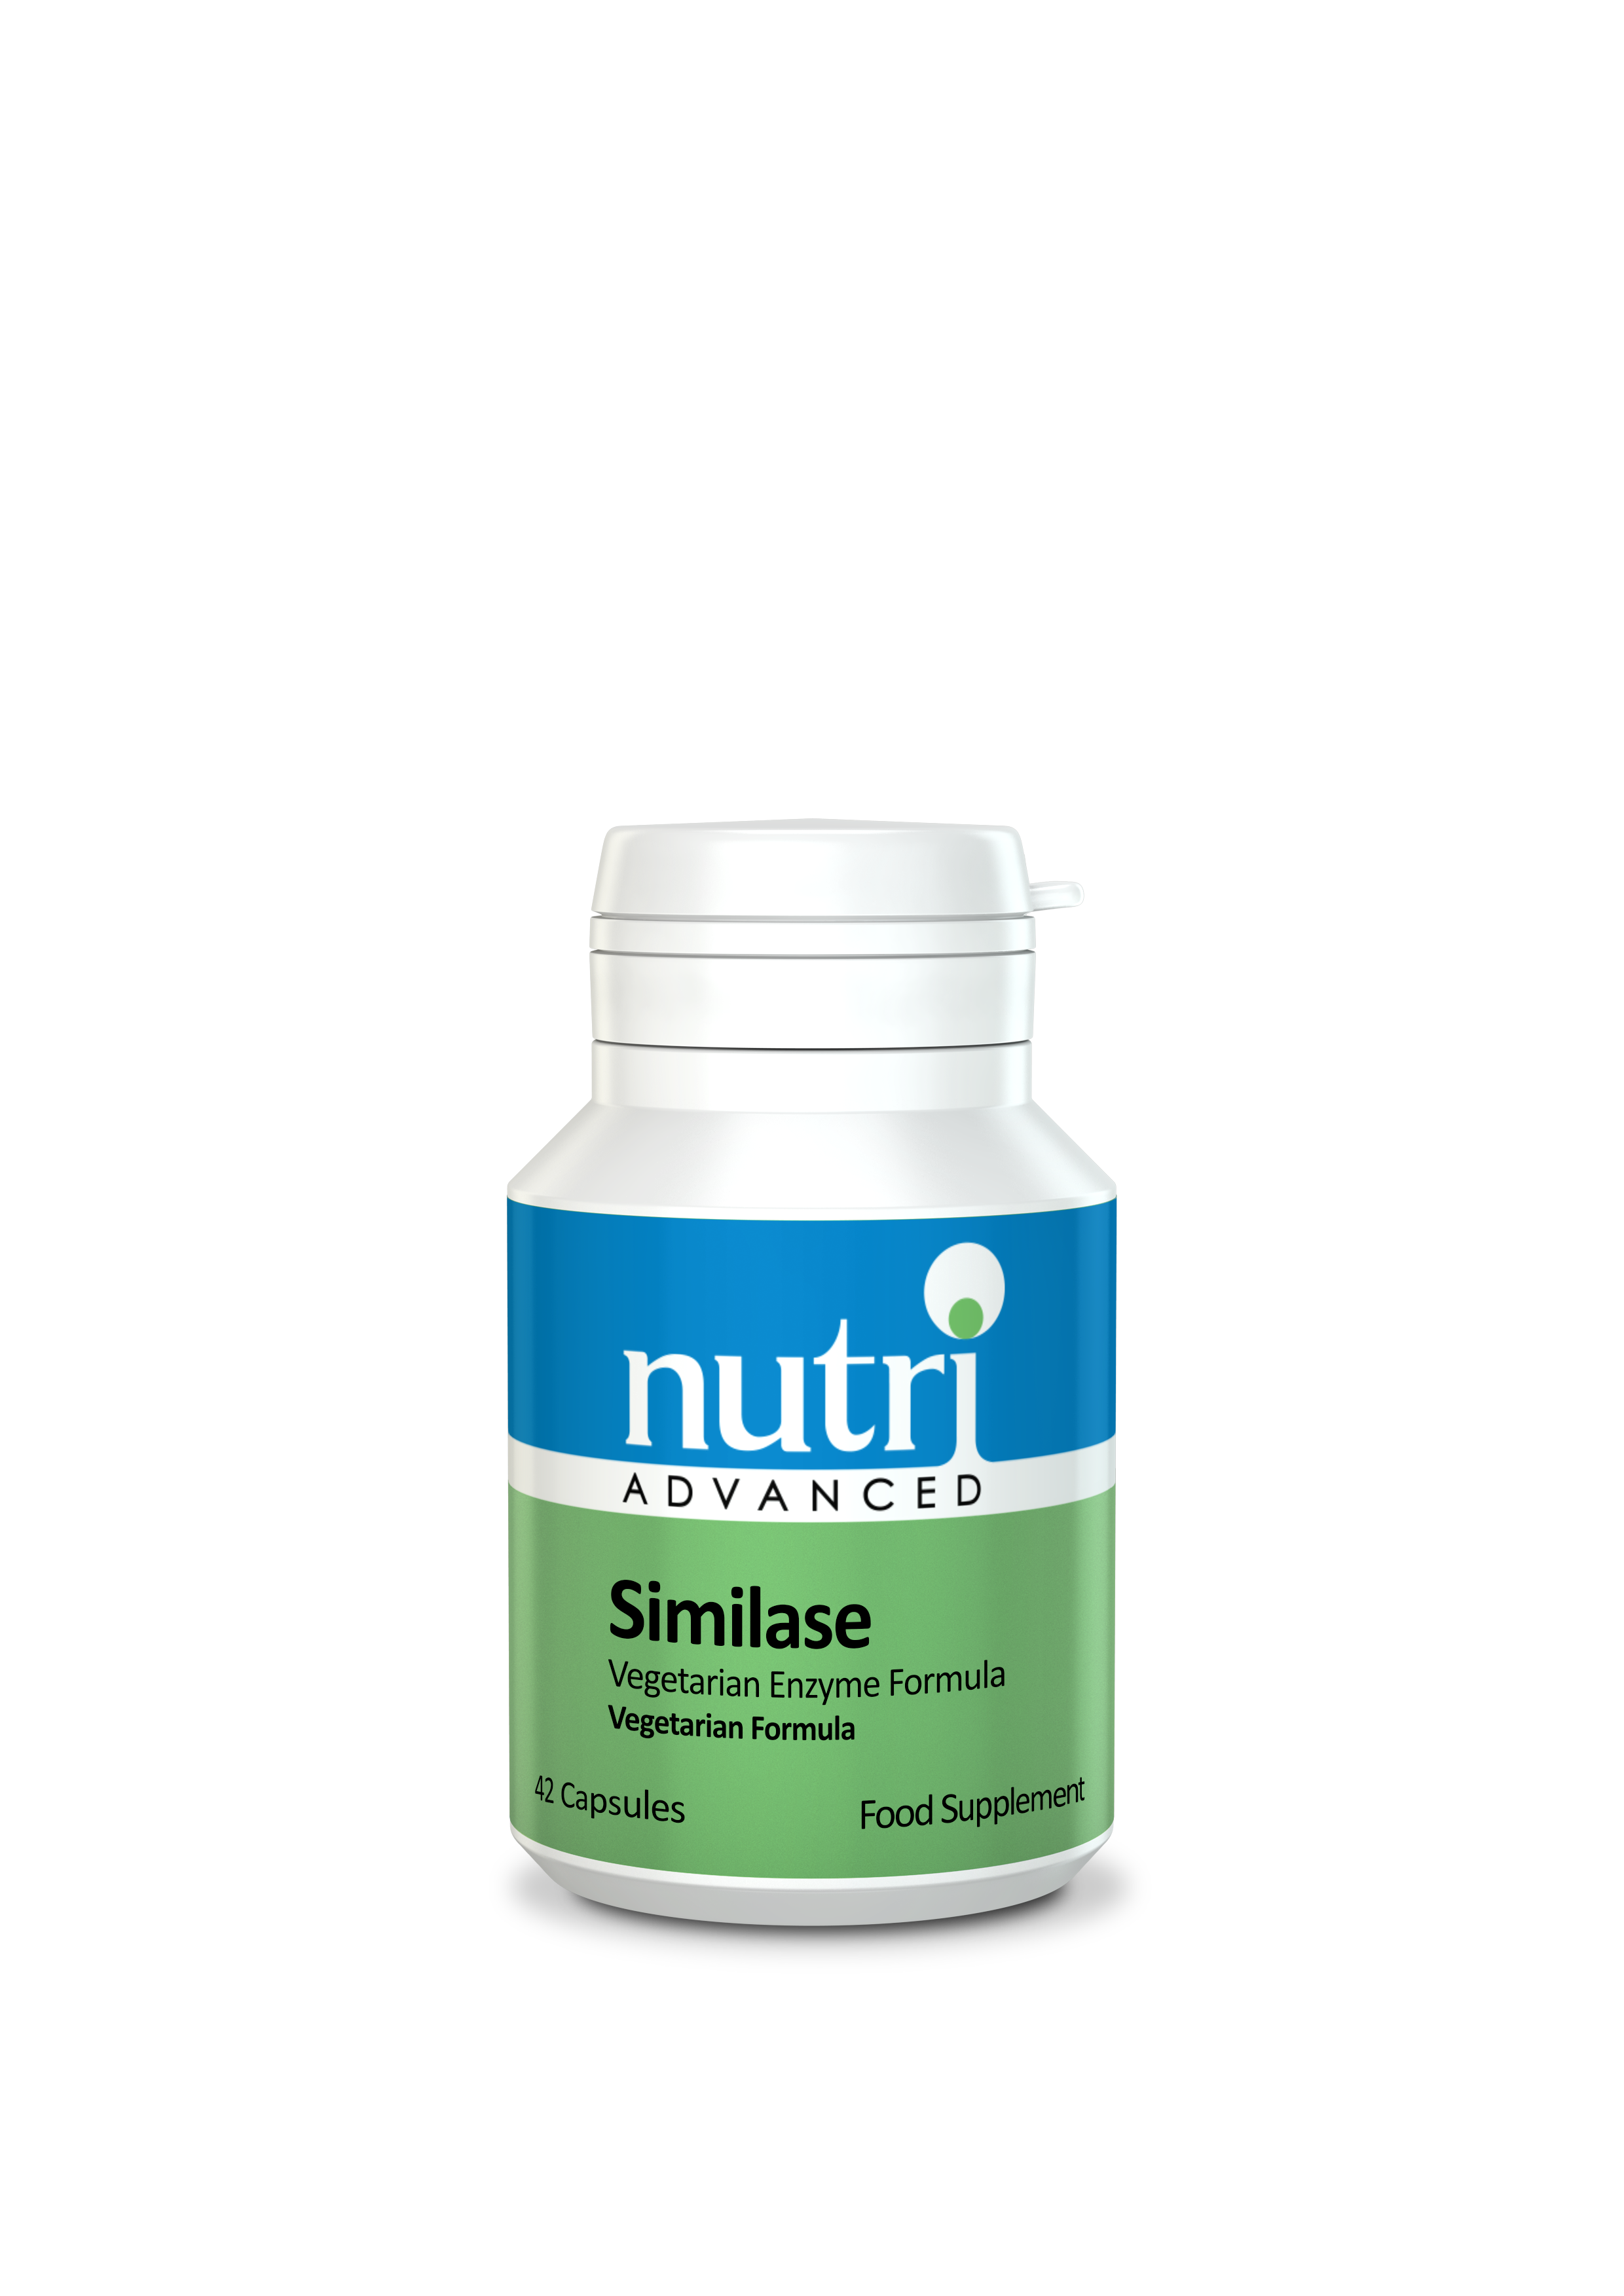 Nutri Advanced Similase - caps